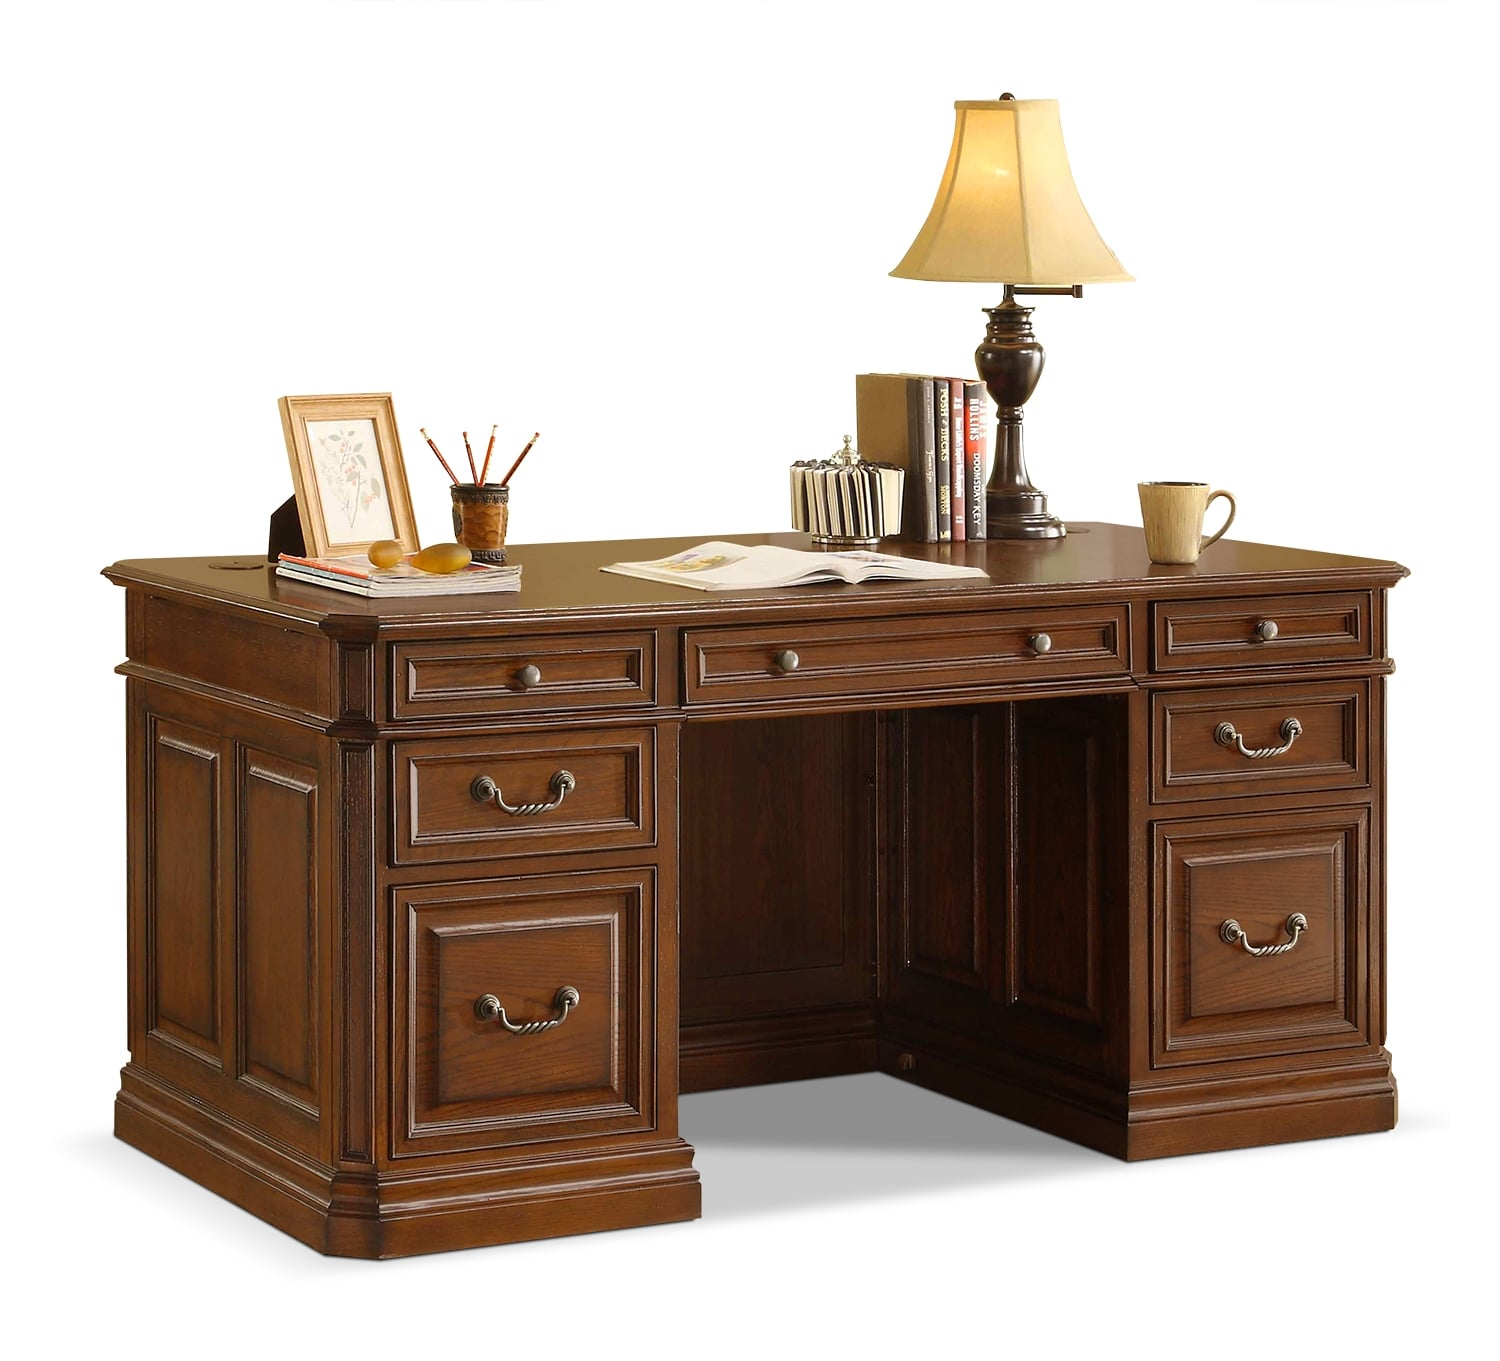 Johanne Executive Desk - Chocolate Oak